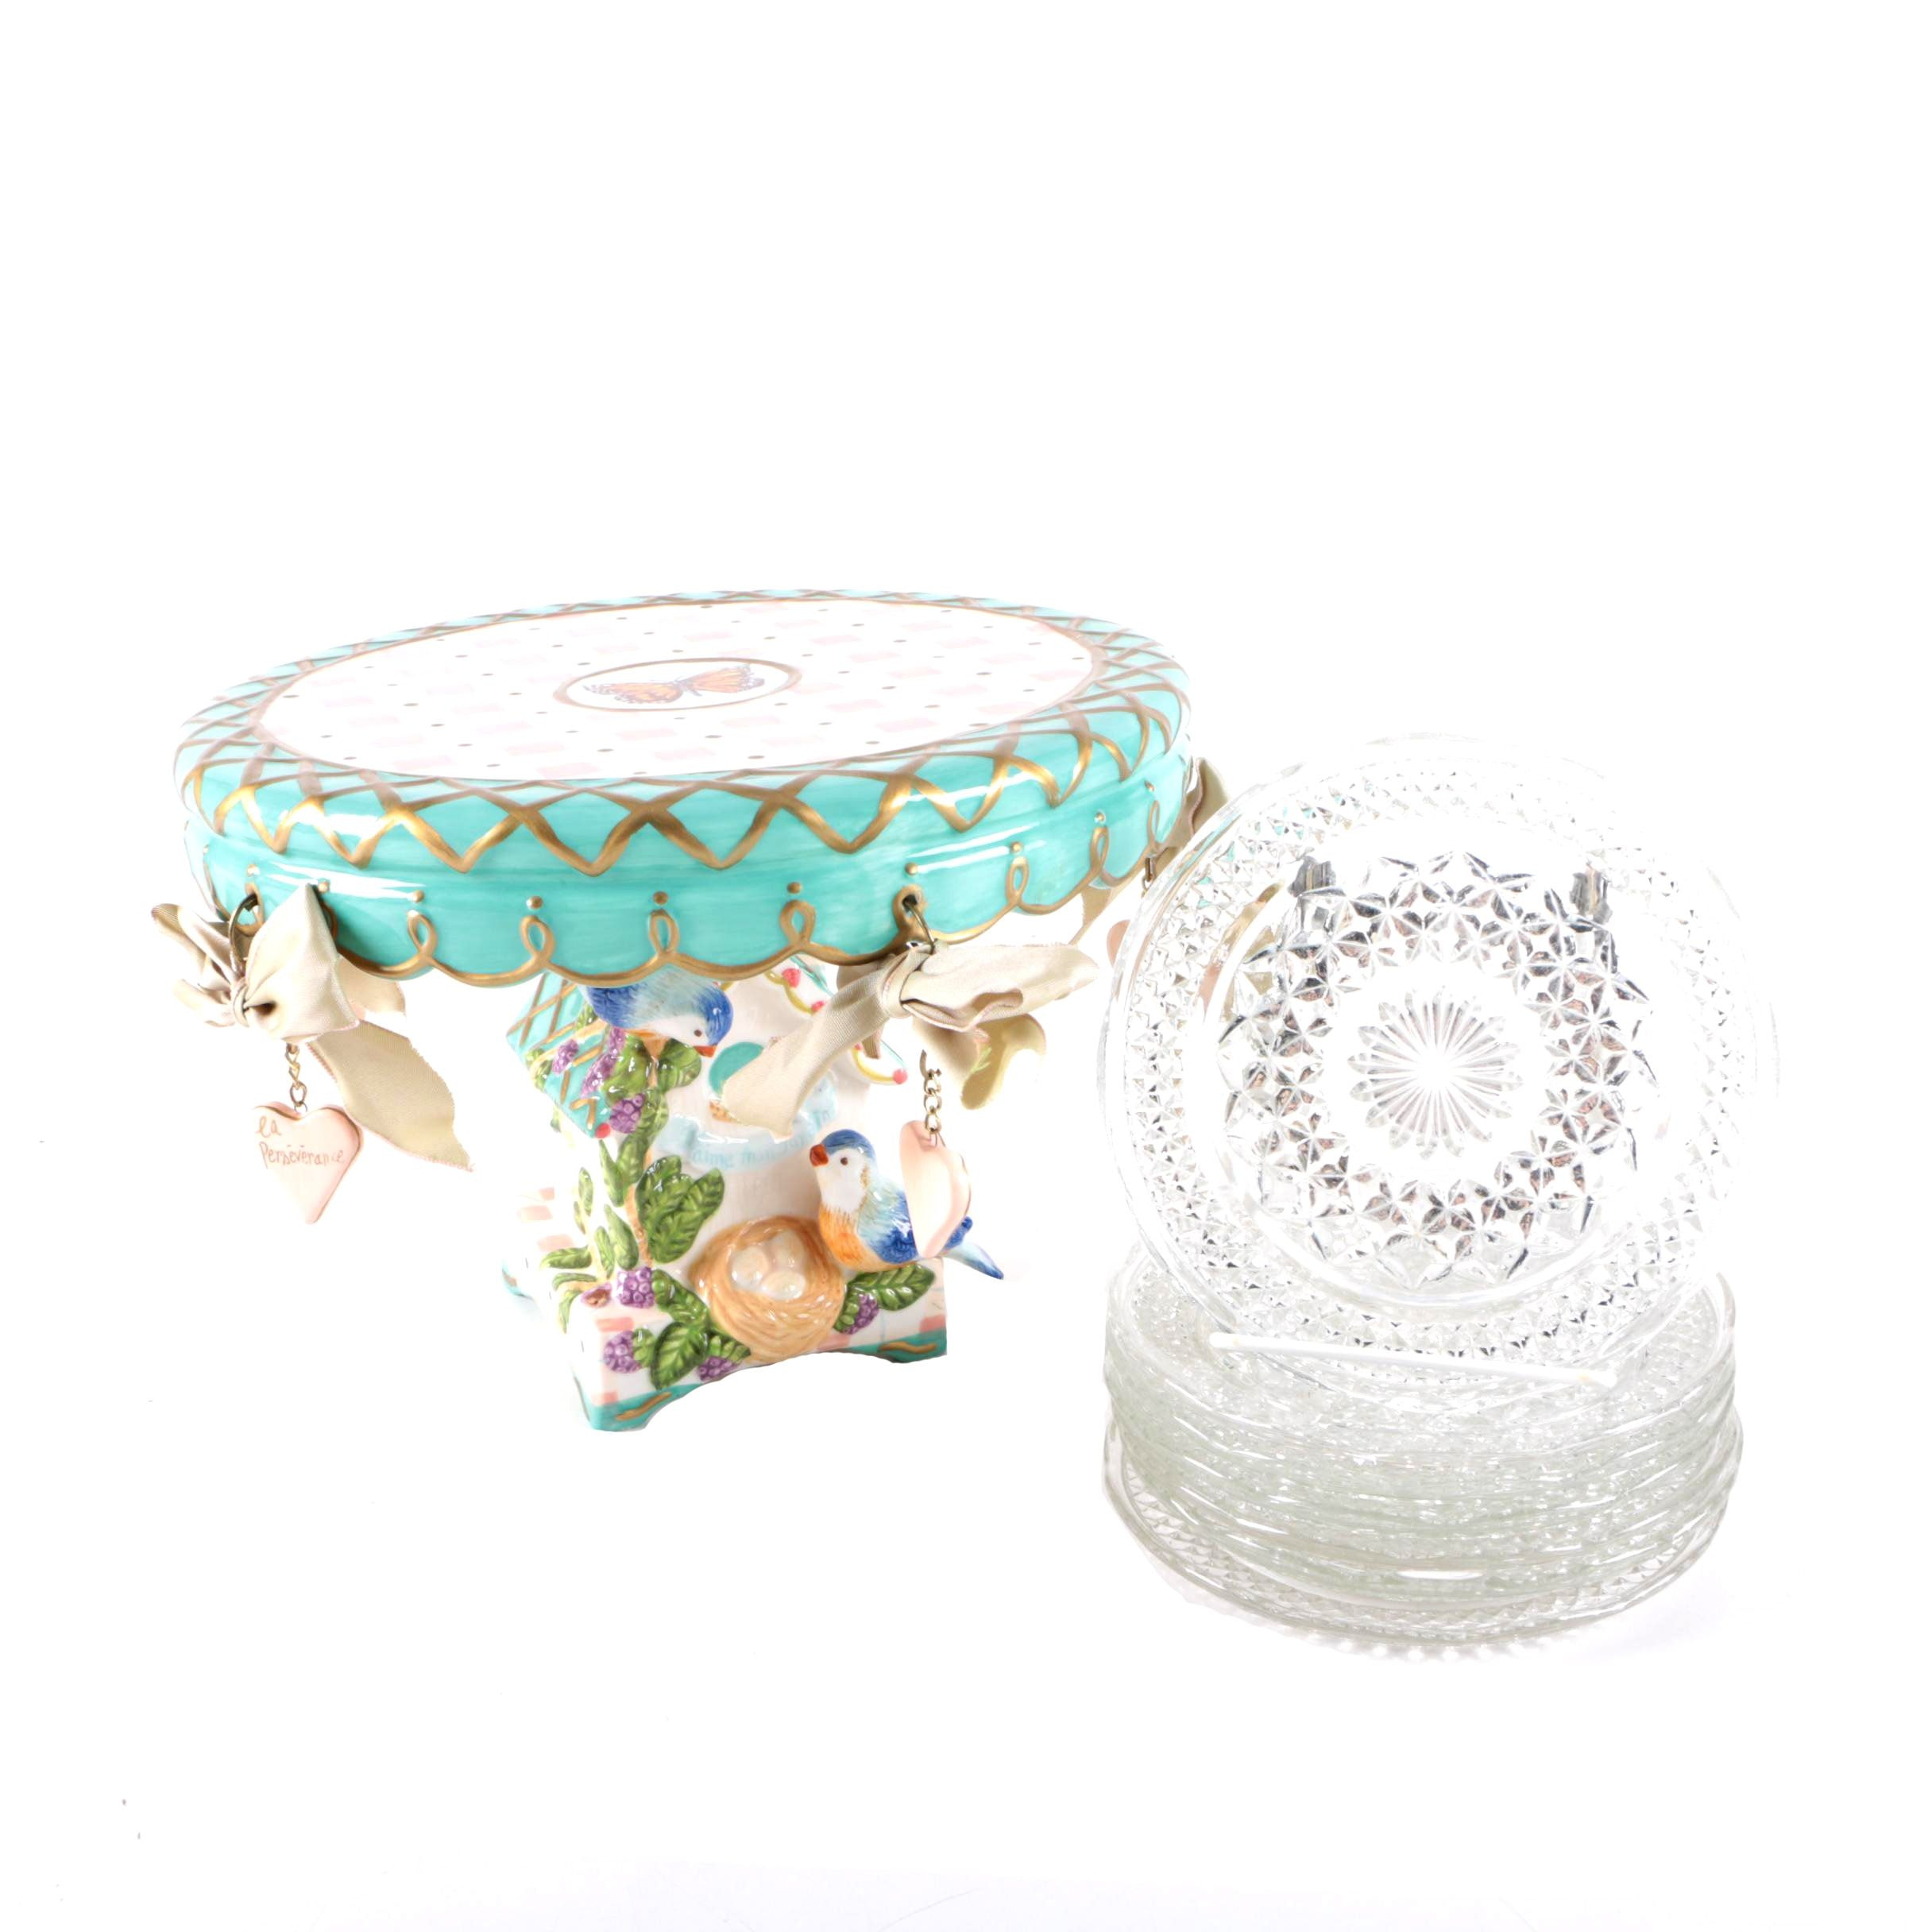 Whimsical Ceramic Cake Stand with Pressed Glass Dishes